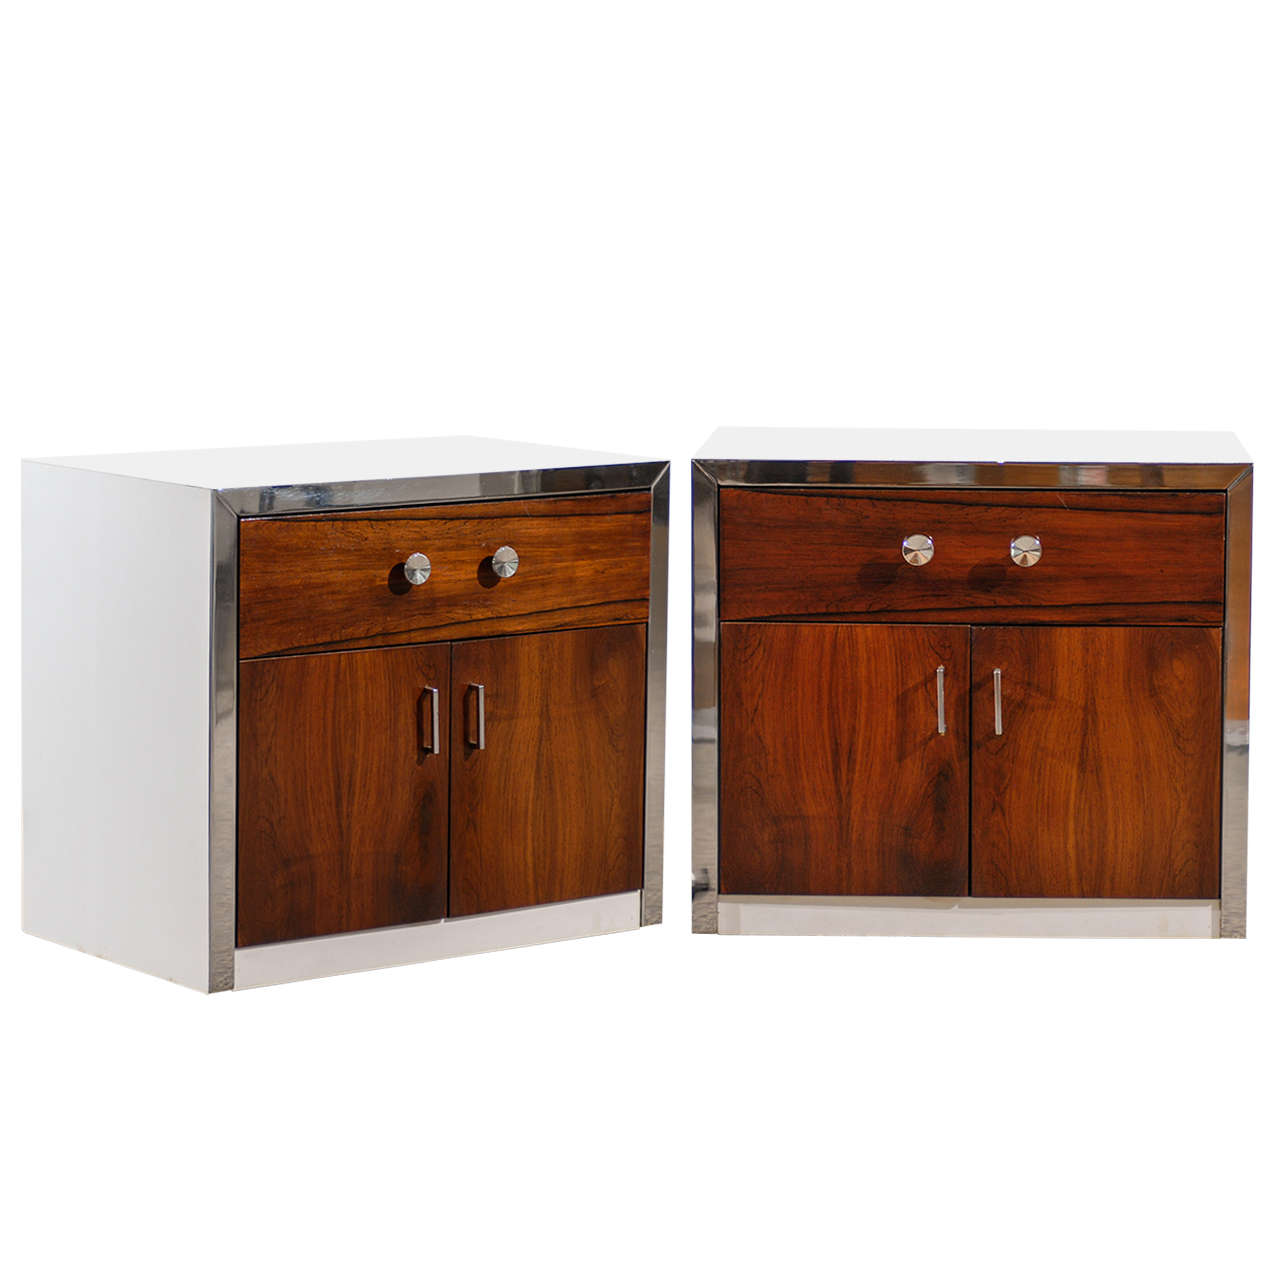 Handsome Pair of Modern End Table/Night Stands by John Stuart